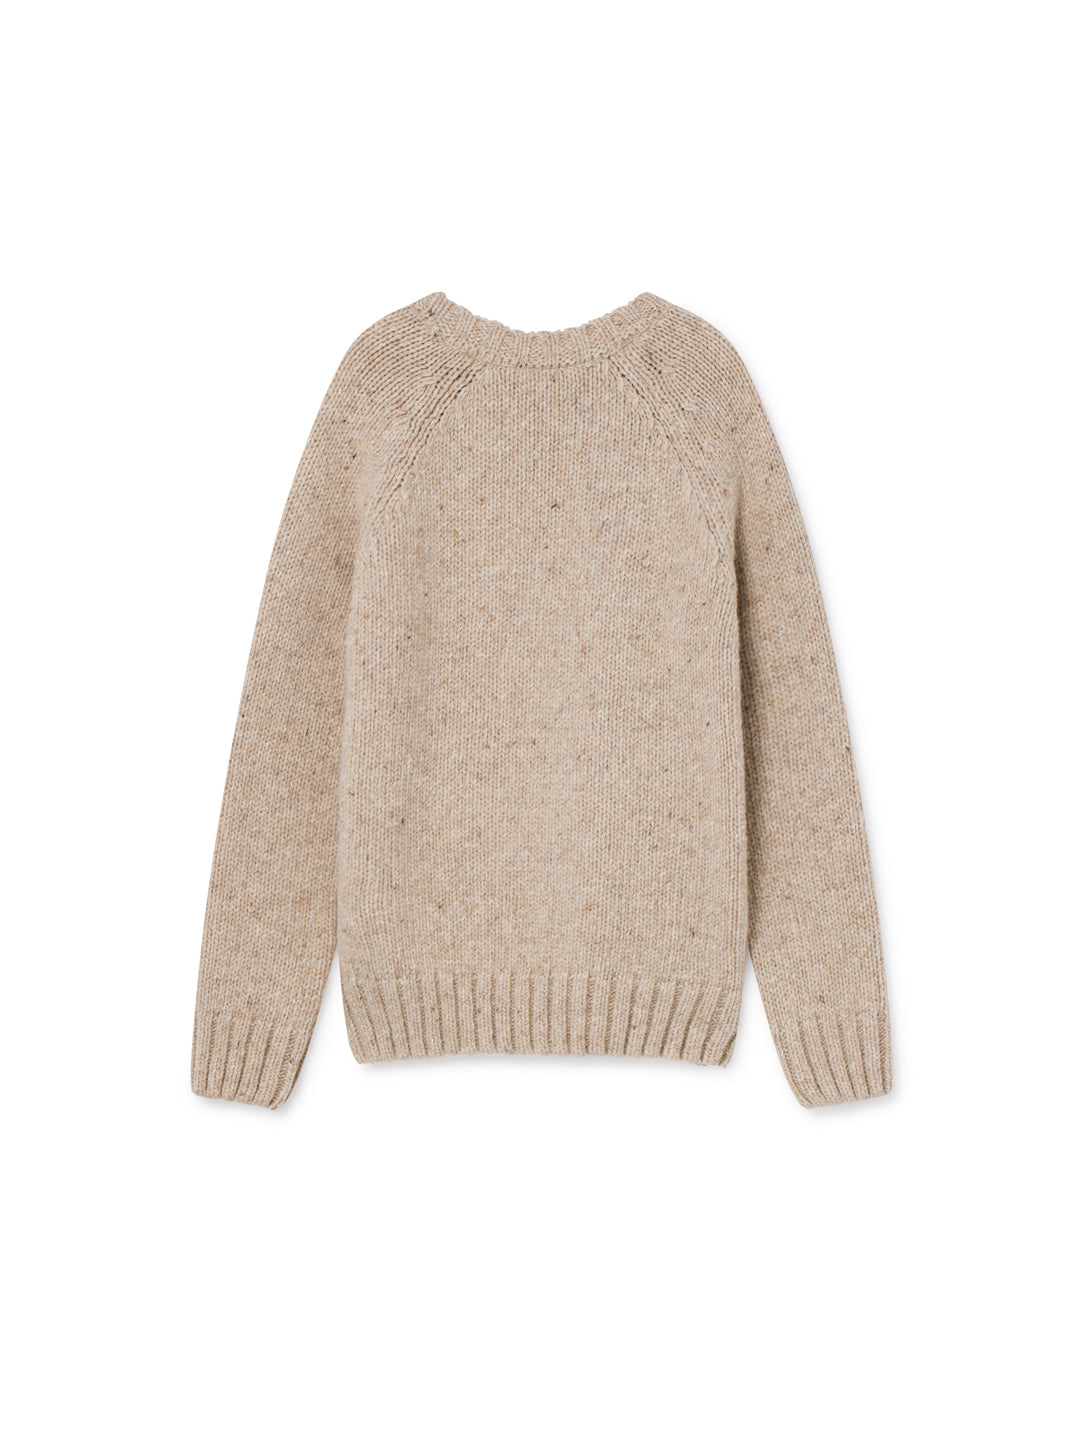 TWOTHIRDS Womens Knit: Jurma - Beige back